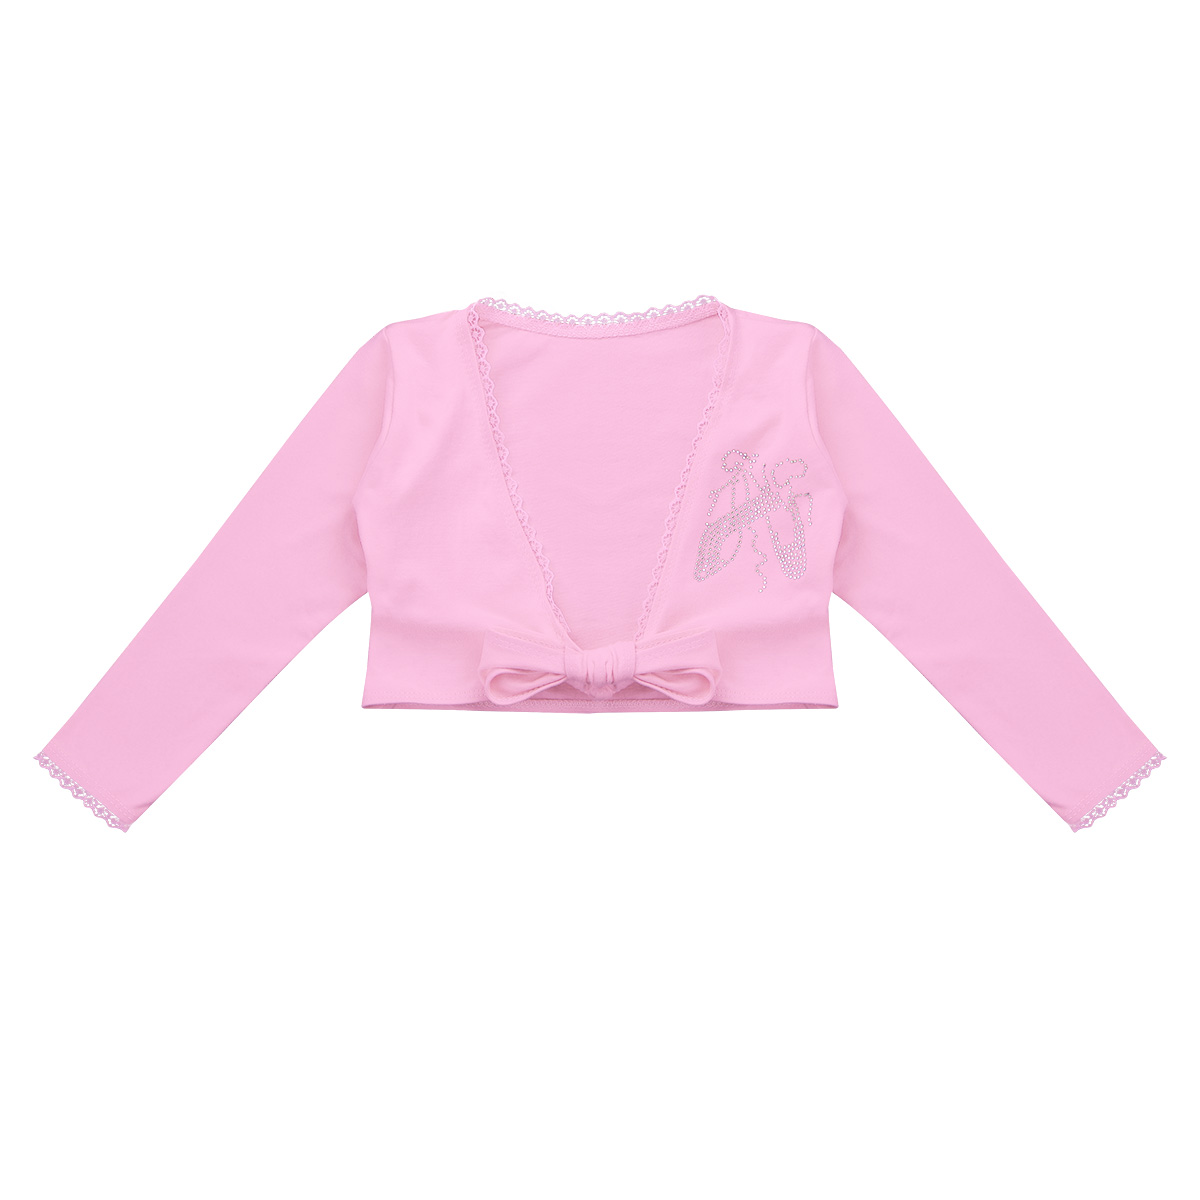 49467d541 Girls Outfit Clothing Classic Long Sleeve Front Knot Cotton Wrap Top Ballet  Dance Cardigan Tutu Outerwear Tops for Children-in Jackets & Coats from  Mother ...